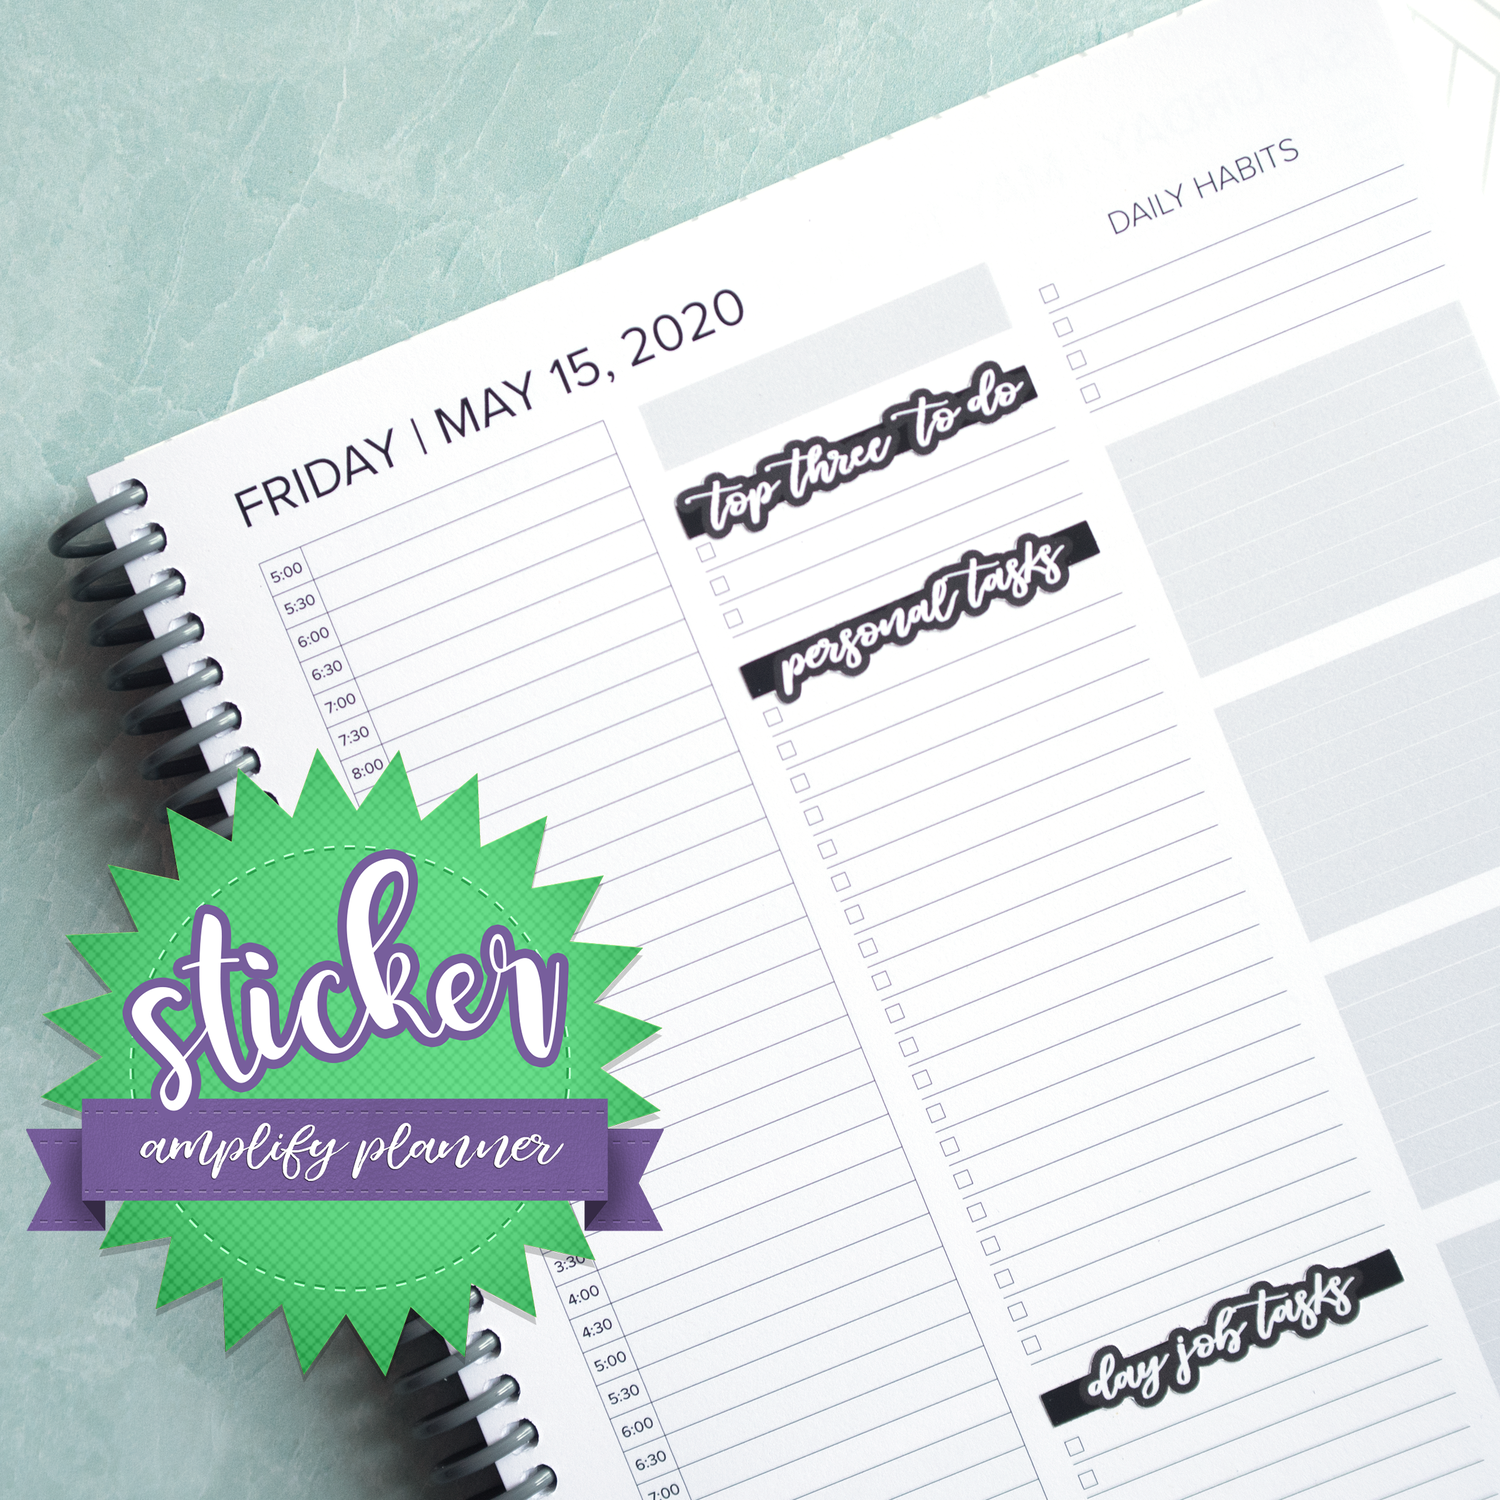 Galaxy Theme Weekly Sticker Kit for Amplify Planner Space Oddity Planner Sticker Kit September Weekly Spread Stickers